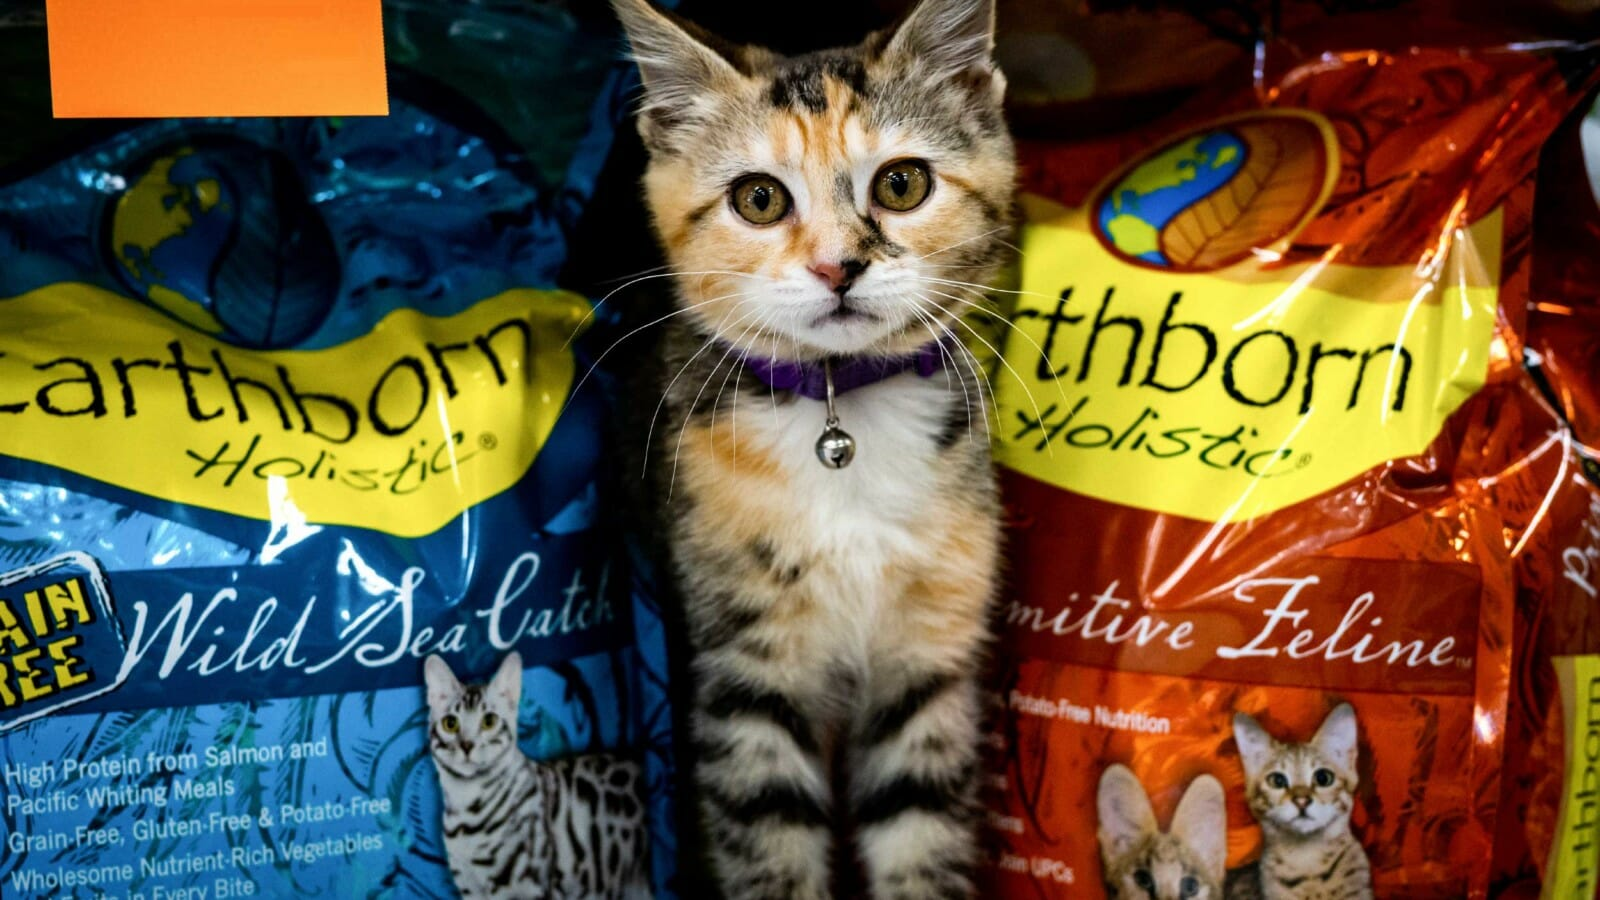 A kitten sits between two cat food bags